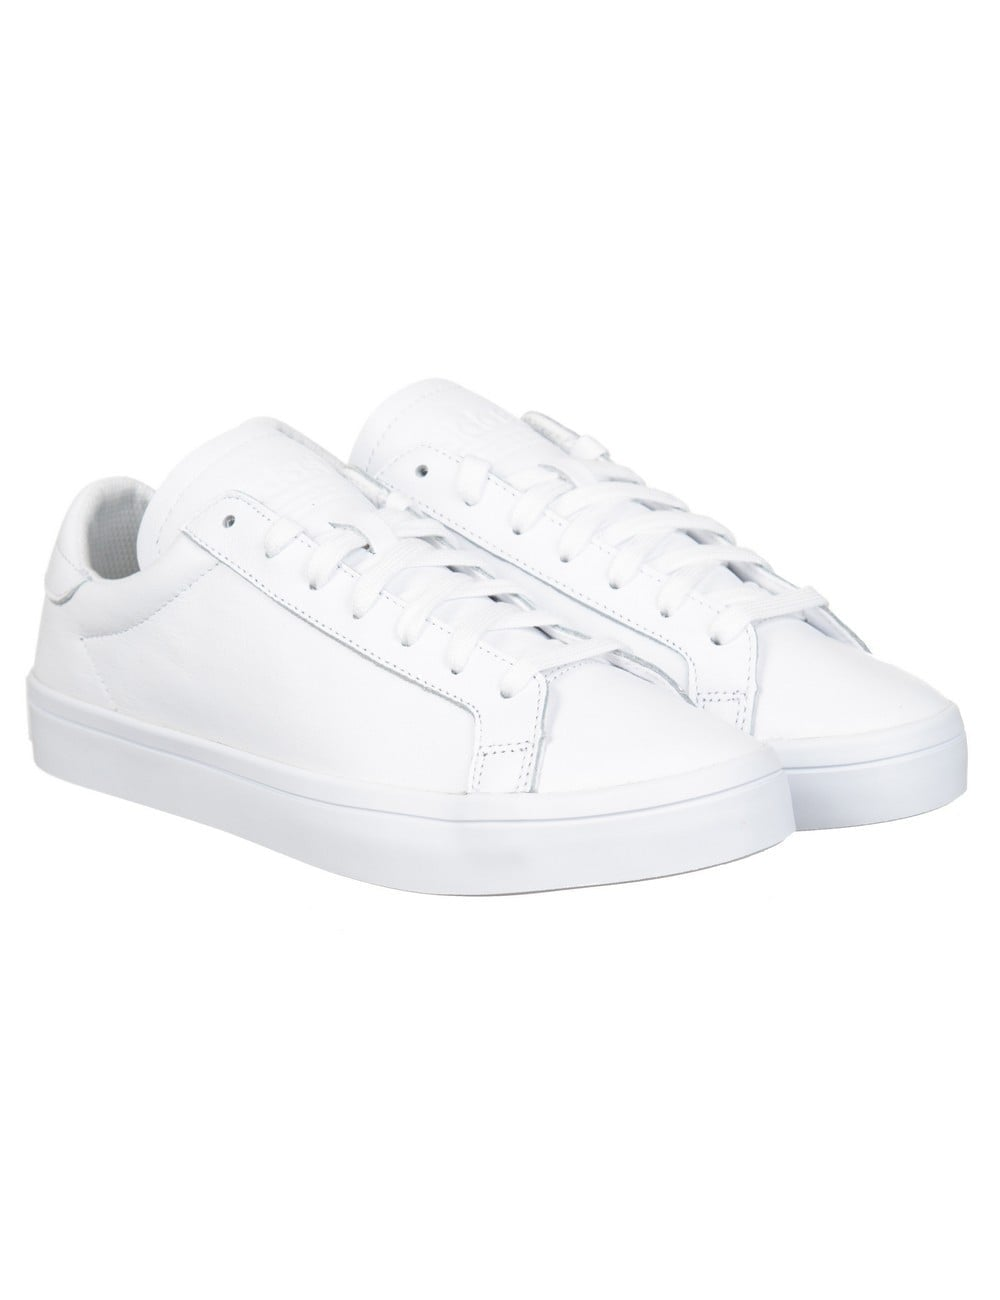 Court Vantage Shoes WhiteWhite